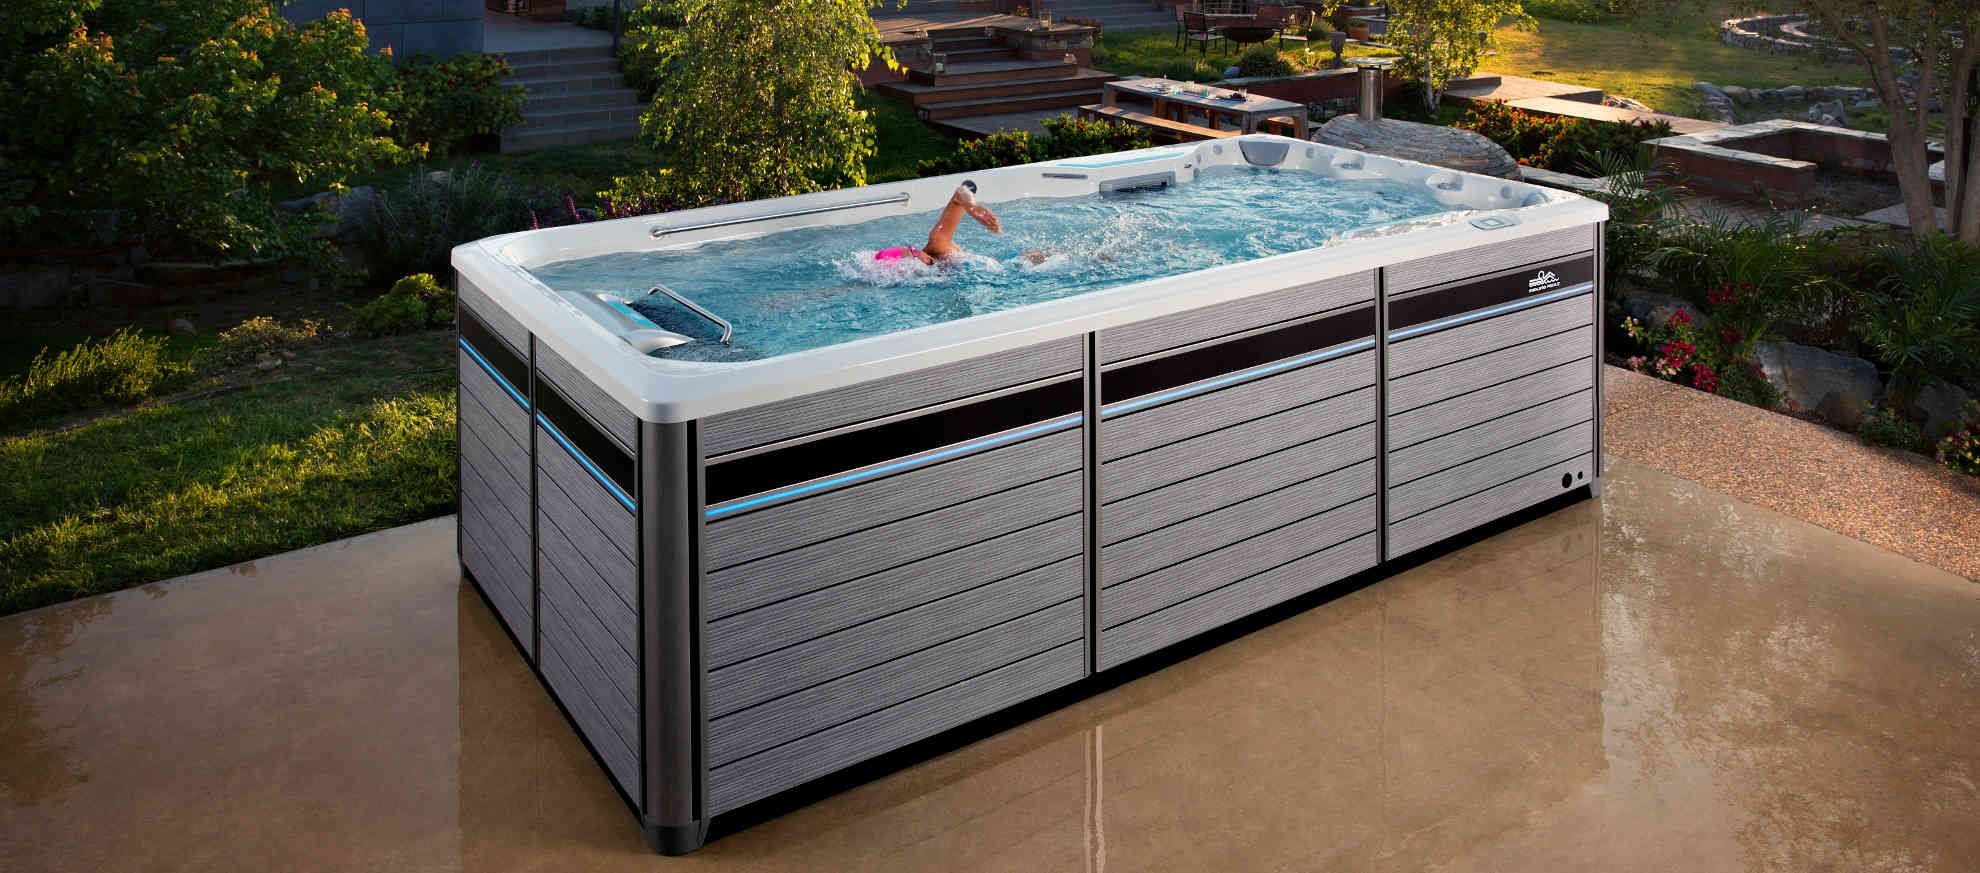 Jacuzzi Endless Pool Endless Pool Swim Machine Fitness Systems